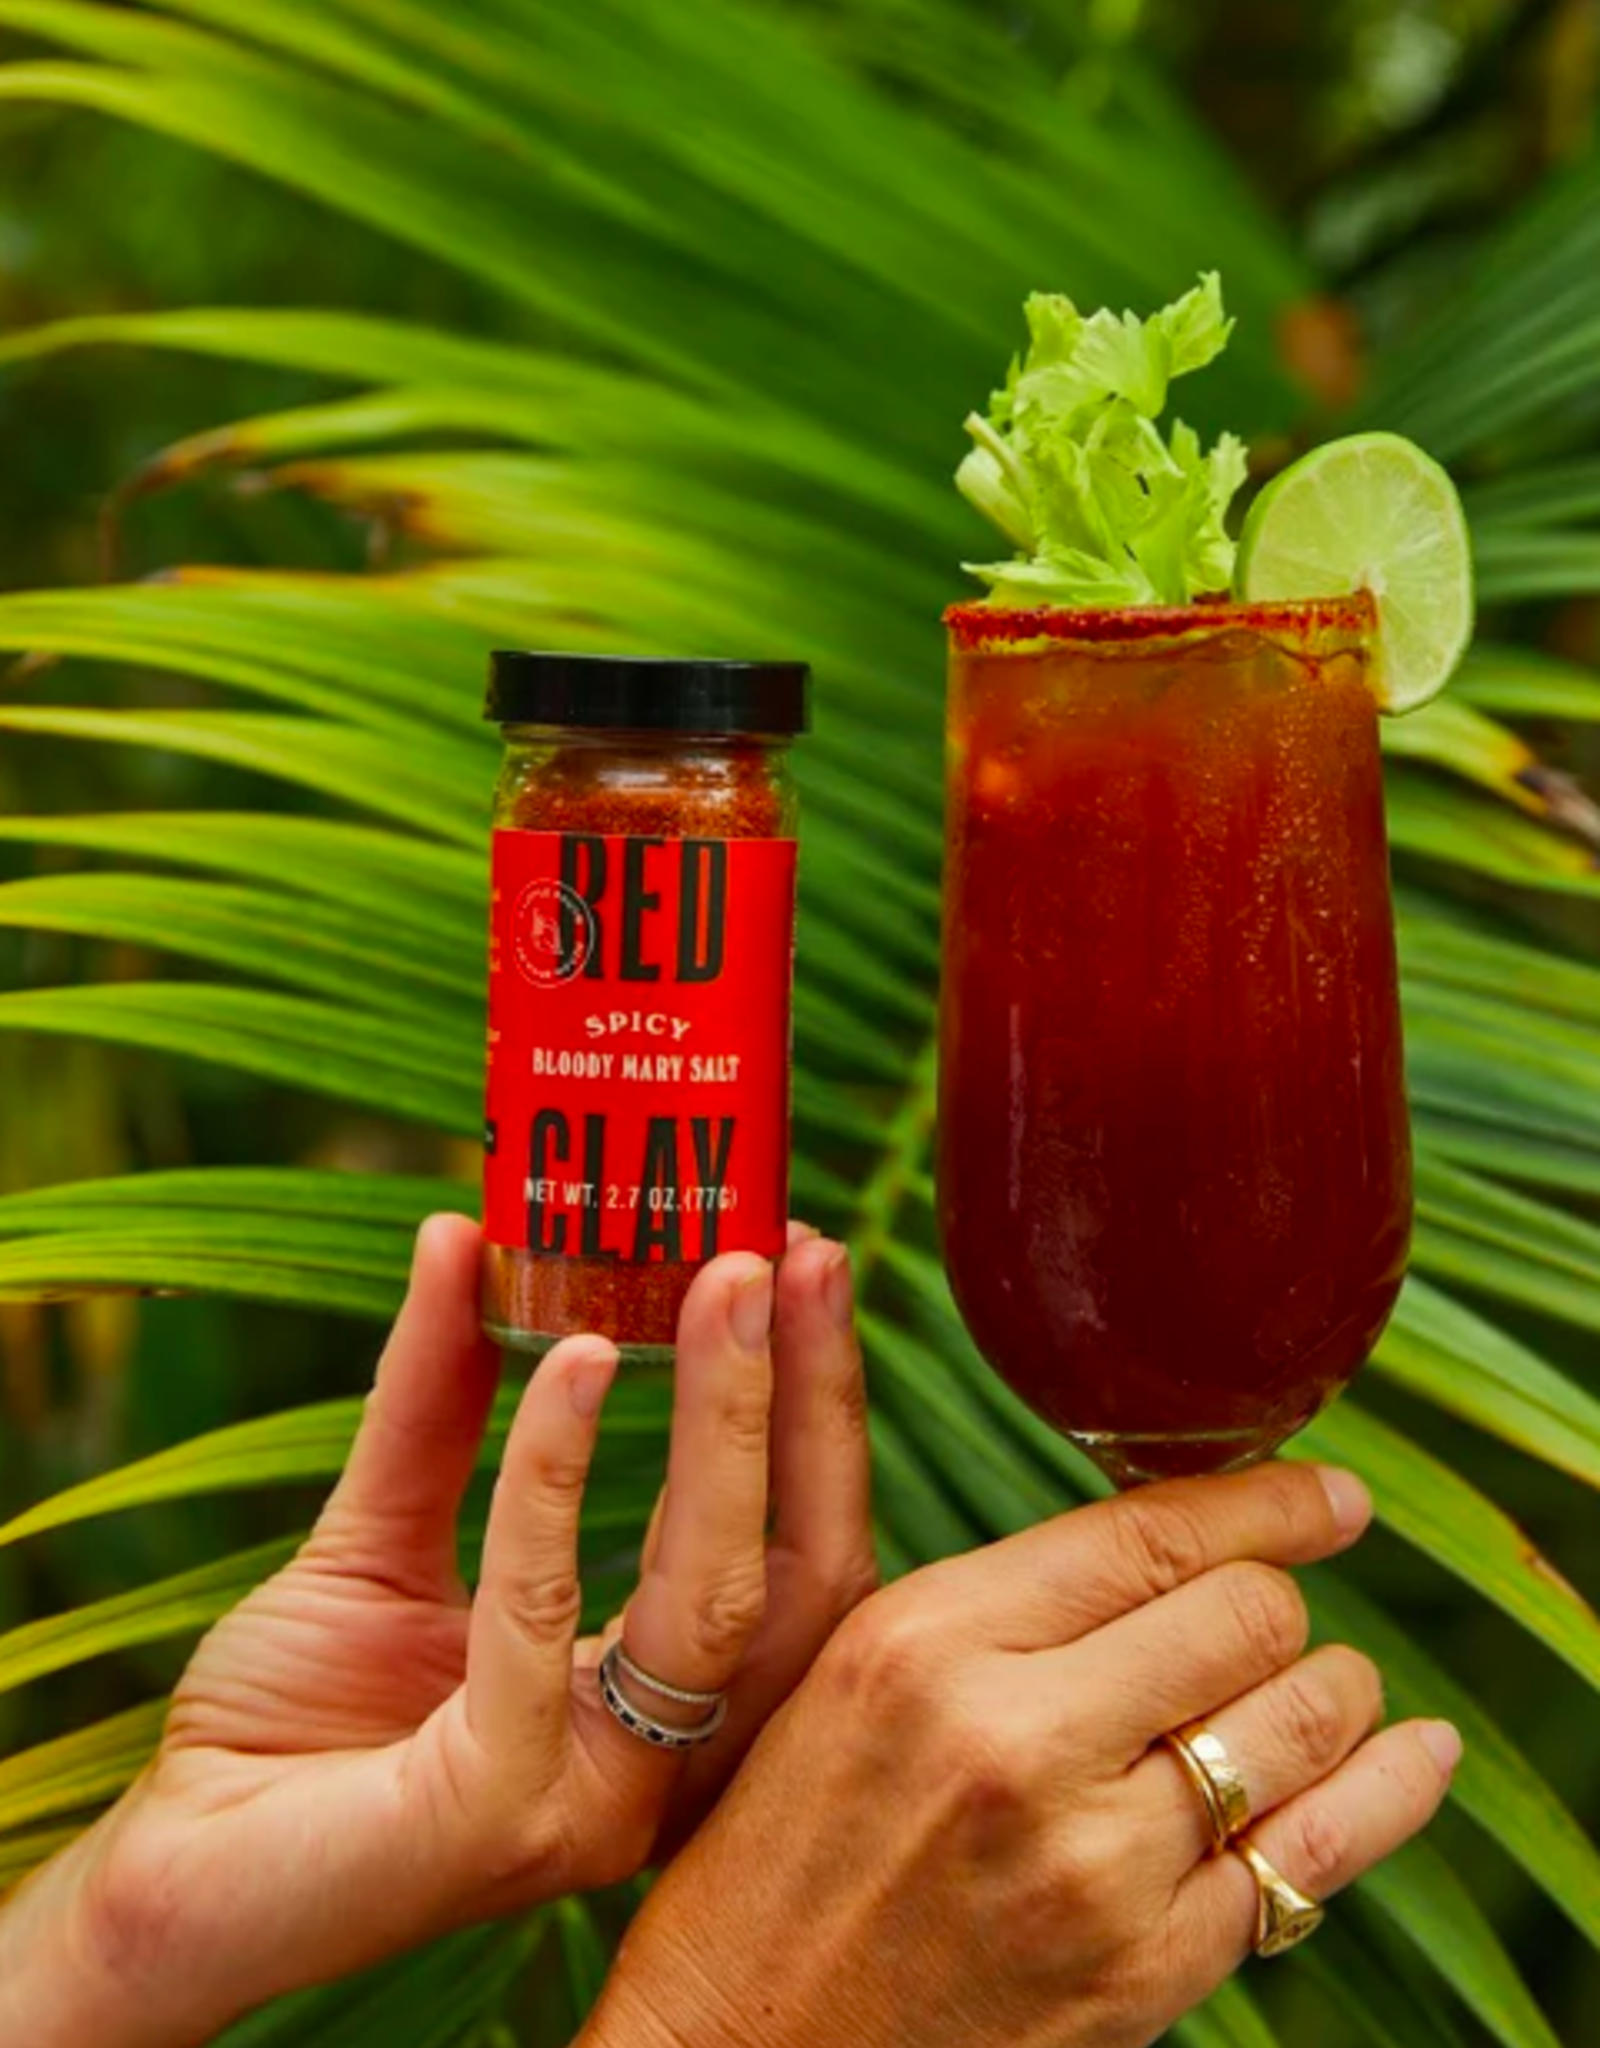 Spicy Bloody Mary Salt